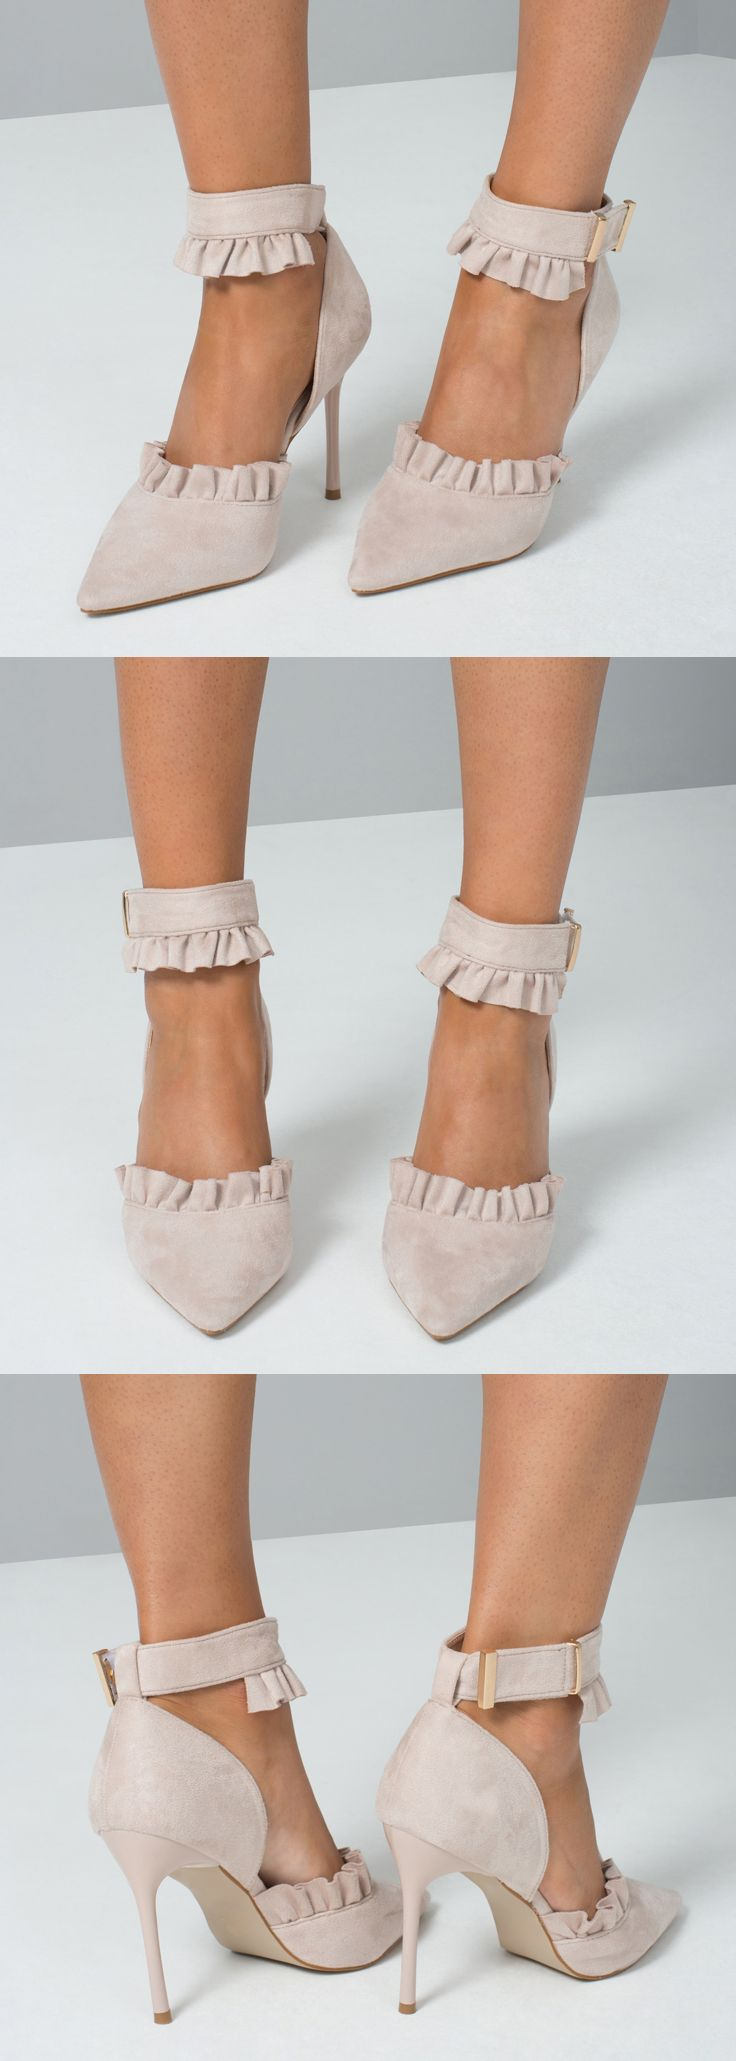 Anita Heels Nude SUEDE RUFFLE HEELS Shoes. Treat your toes with these pretty ruffle detail heels - a gorgeous court shoe style with ankle strap and gold hardware. New in for spring summer 2018 summer wedding guests or day at the races. The ideal shoes that will go with almost anything for Royal Ascot. Fashion, fashionista, Royal Ascot outfit. Nudes and neutrals. #fashion #fashionista #florals #nudeshoes #shoeaddict #racingfashion #dayattheraces #weddingguest #outfits #weddings #affiliatelink